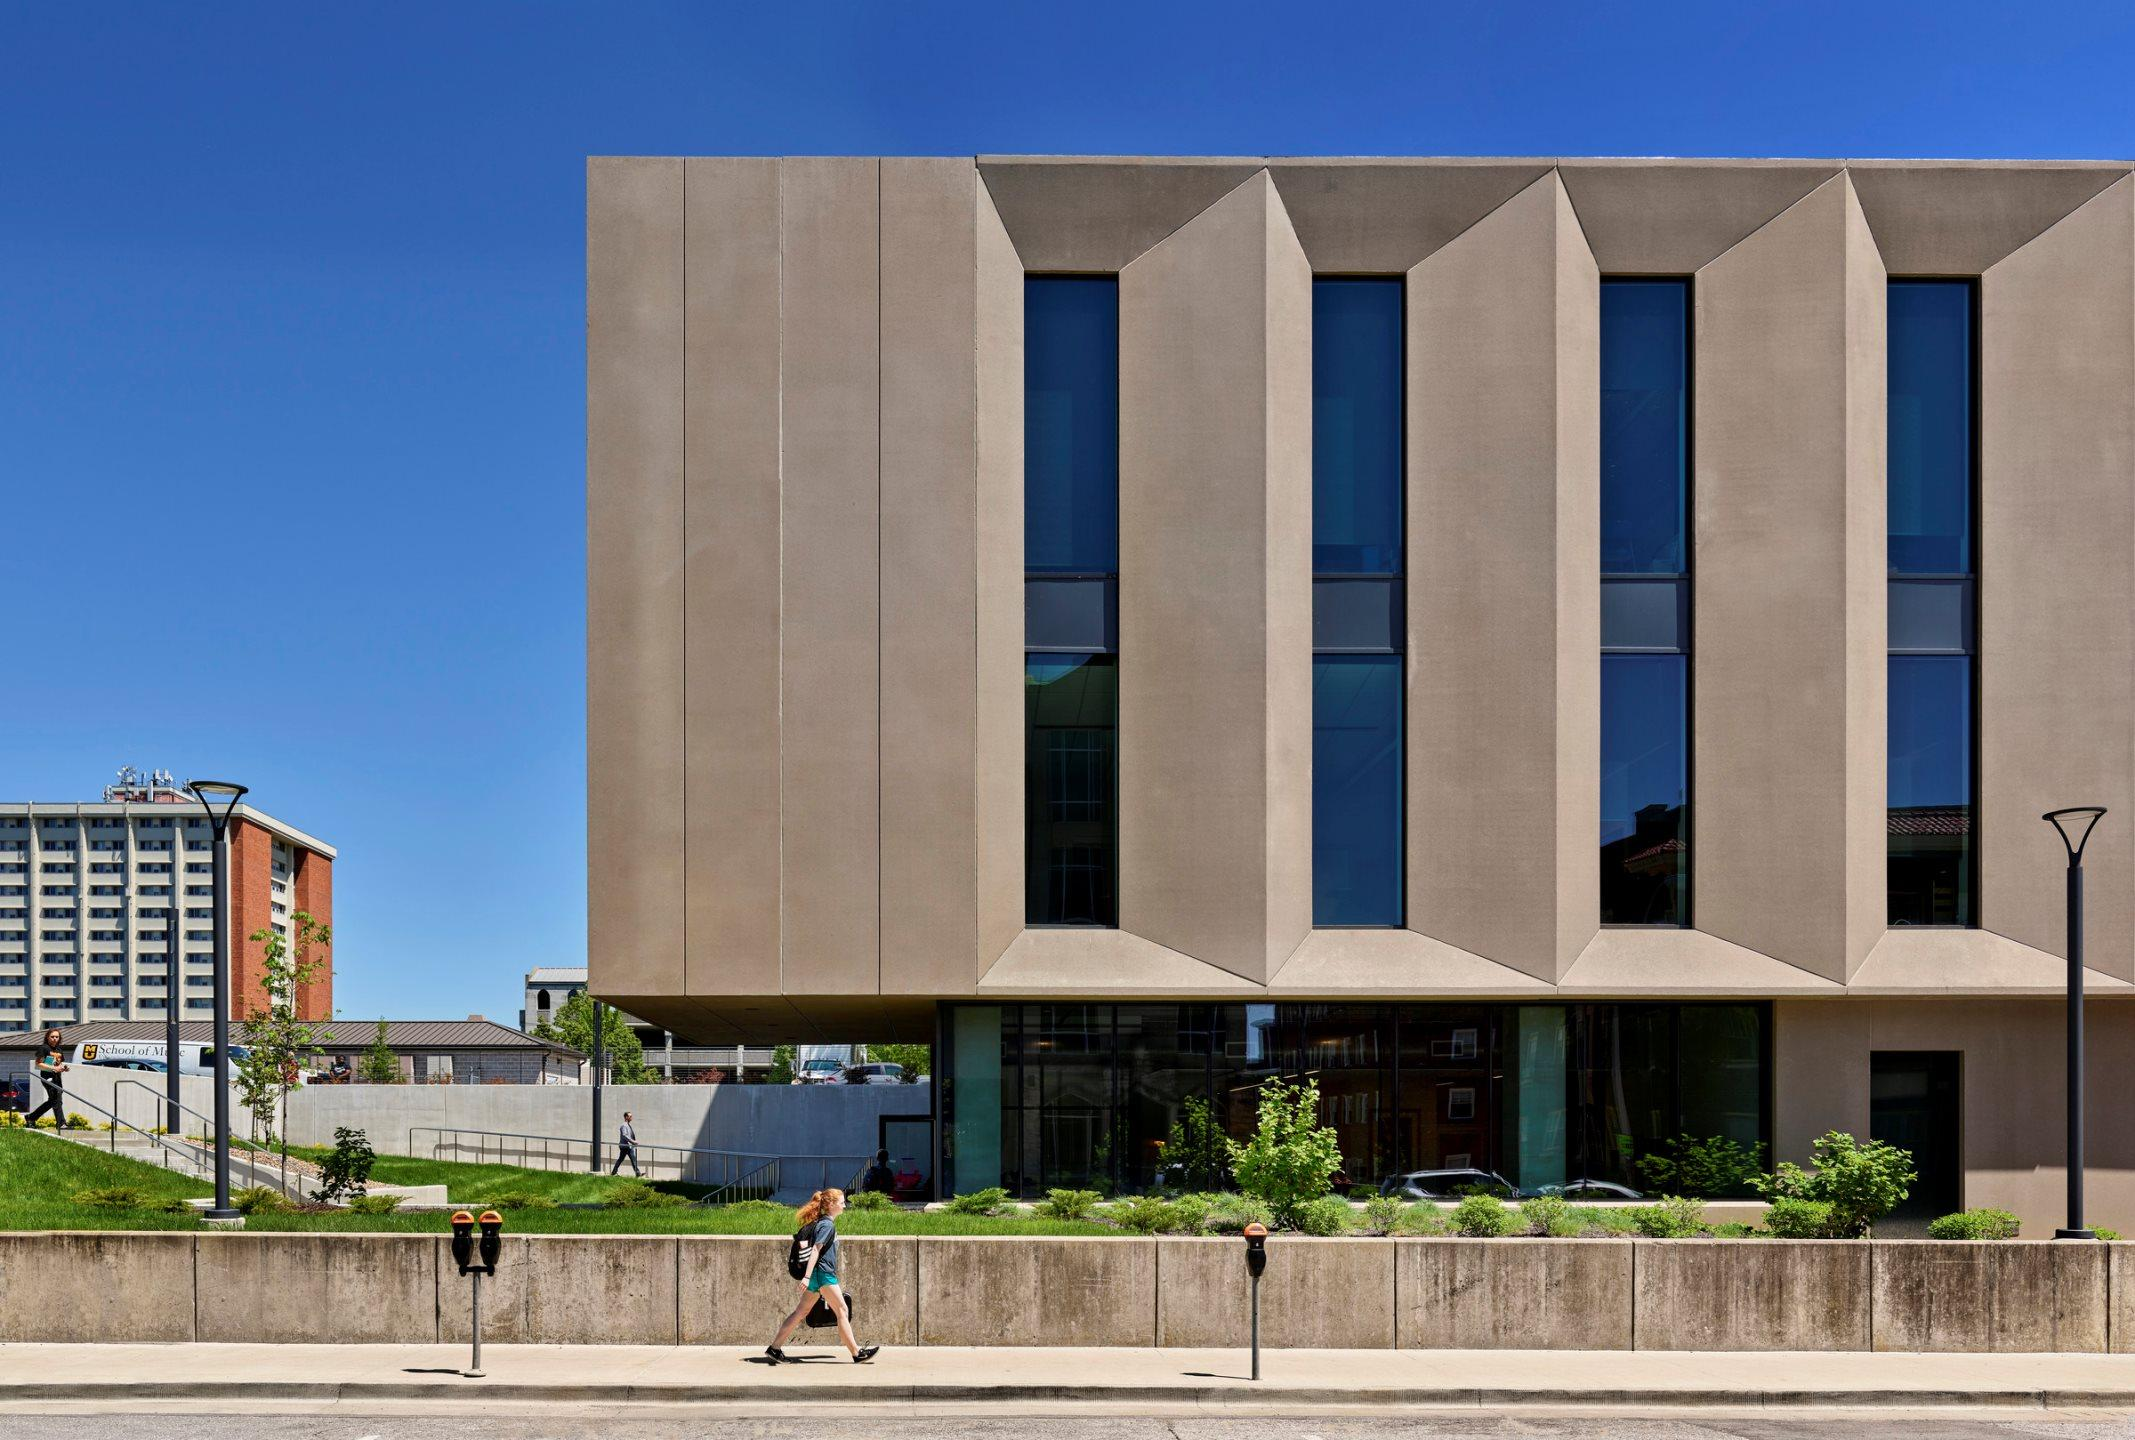 Finding Creative Synergies at University of Missouri-Columbia's Sinquefield Music Center